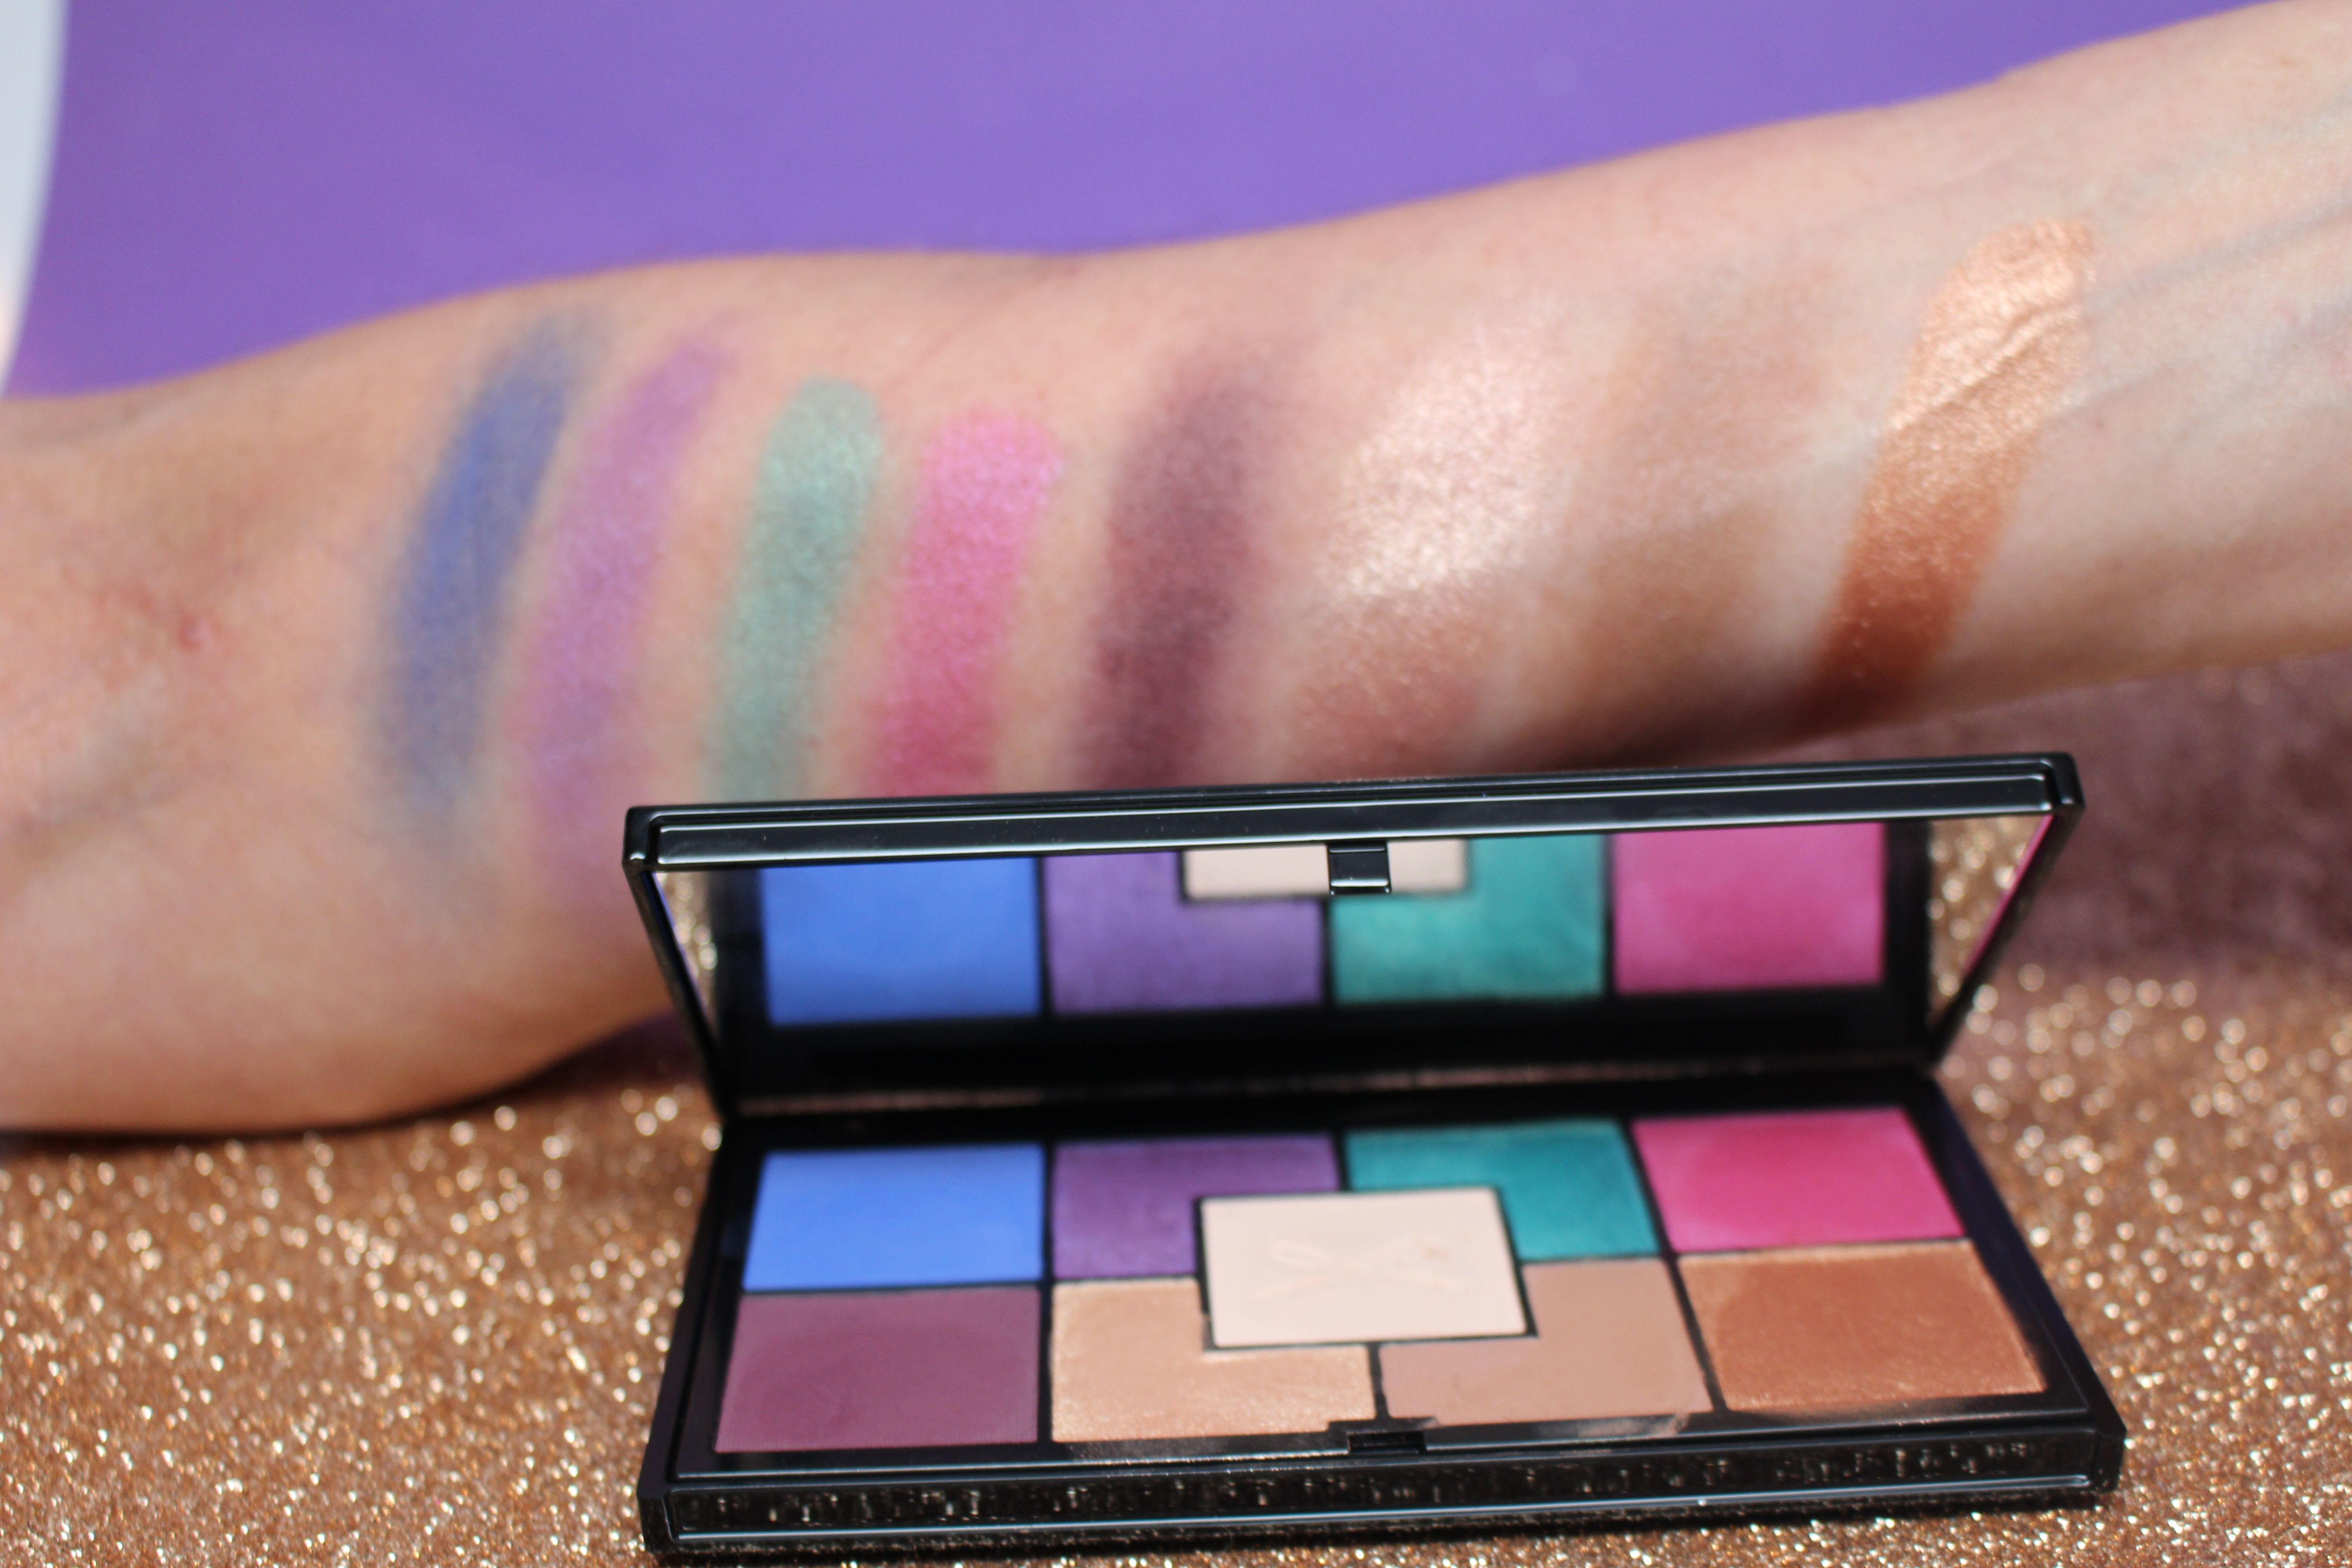 The Fearless Eyeshadow Palette by Ciate London #13